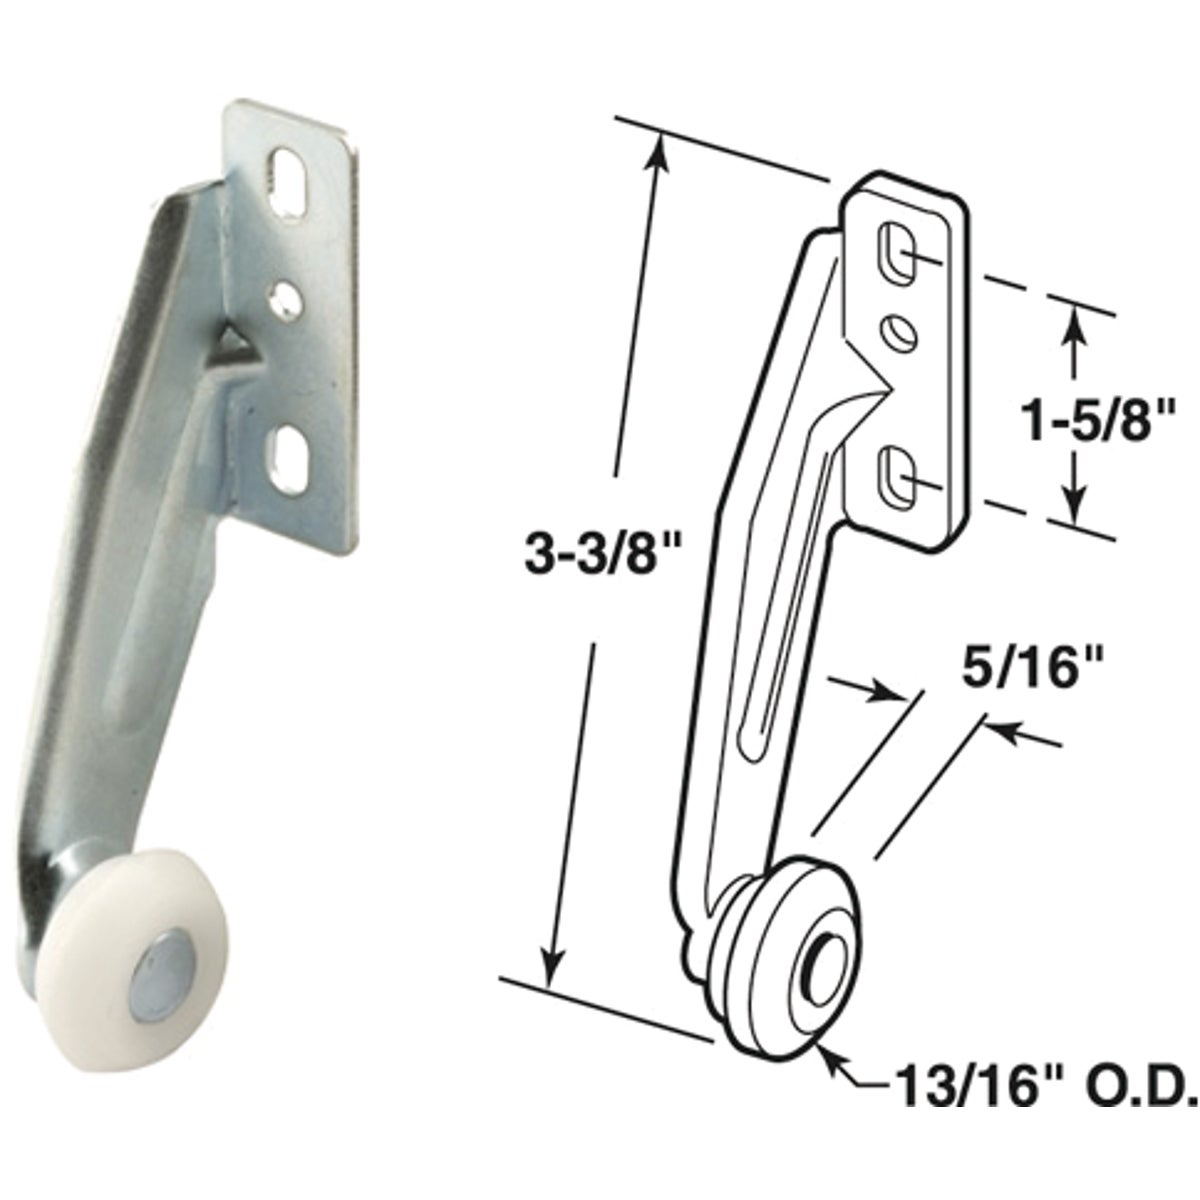 REAR ROLLER BRACKET - 22797 by Prime Line Products